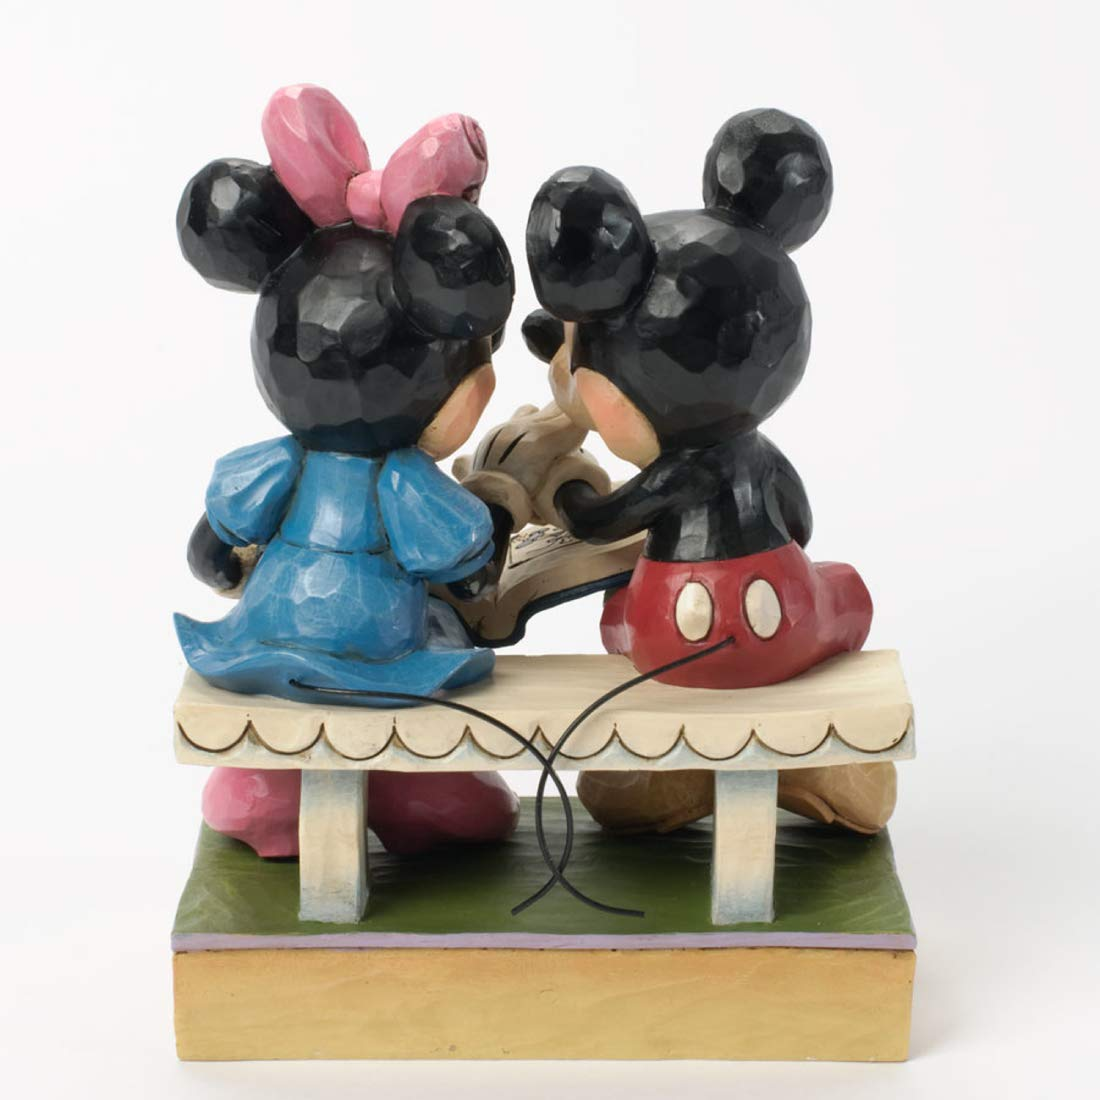 Disney Traditions by Jim Shore 85th Anniversary Mickey and Minnie Mouse Stone Resin Figurine, 6.5